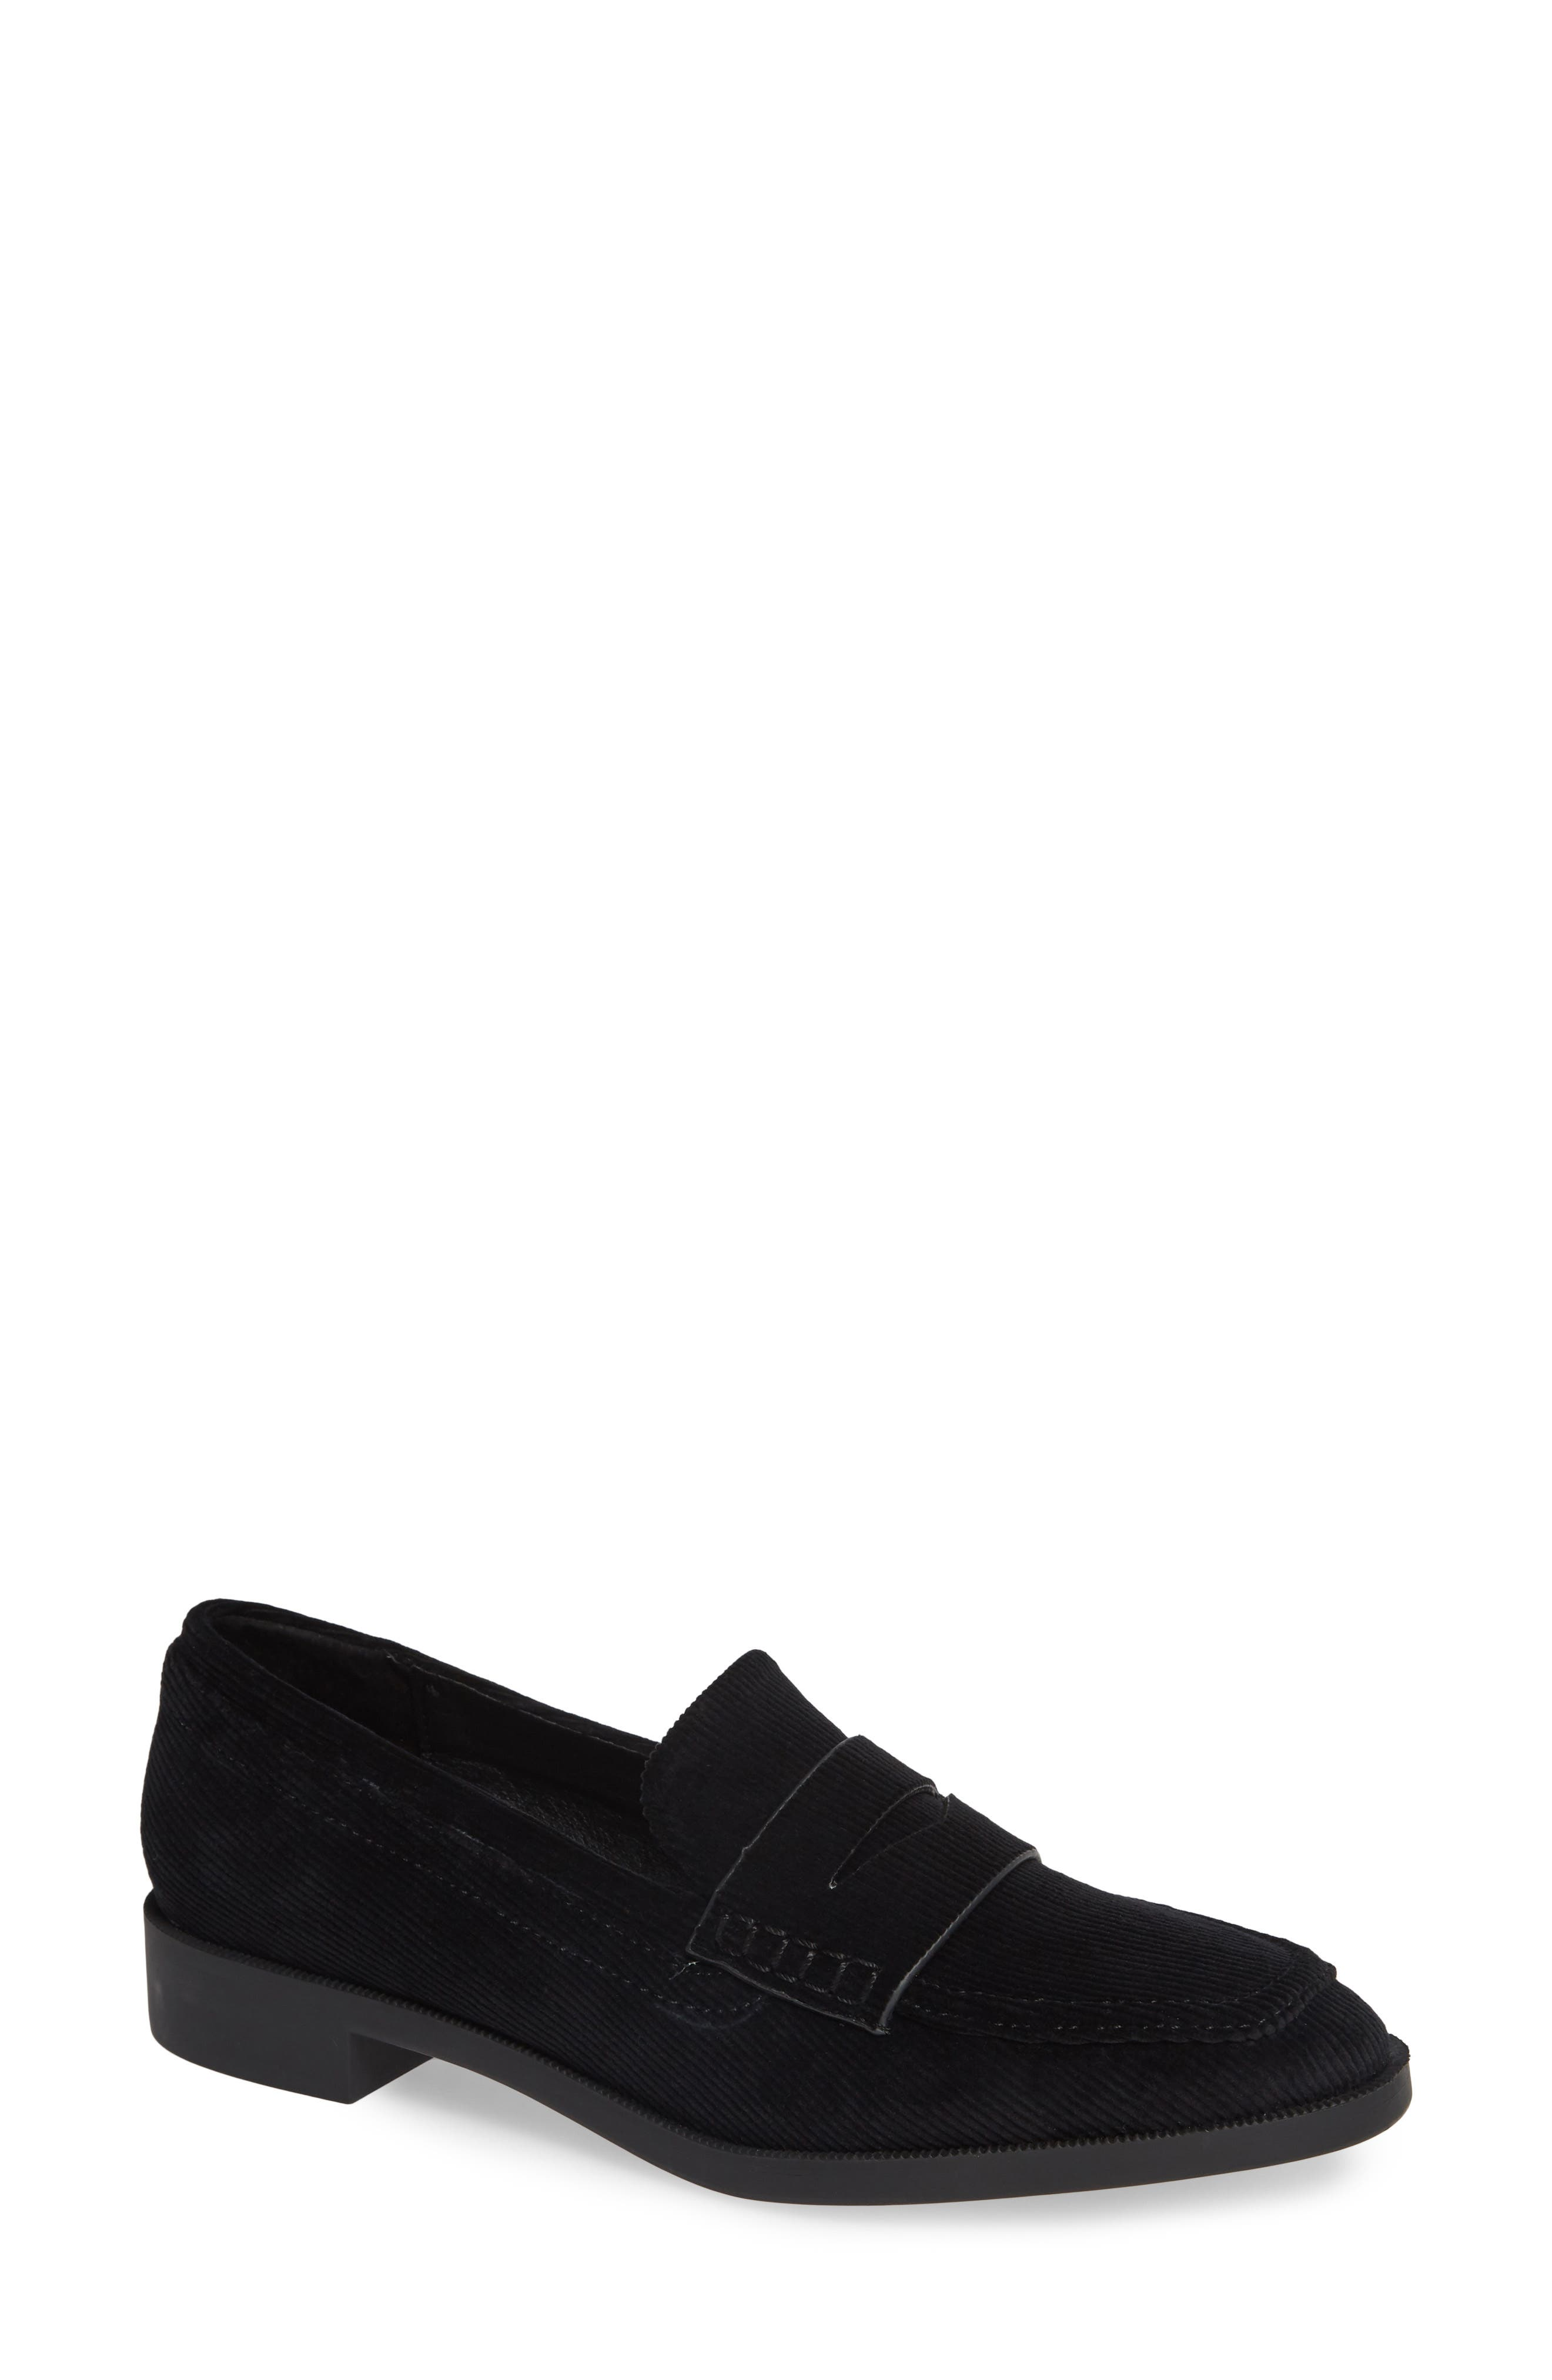 Diplomat Penny Loafer,                         Main,                         color, BLACK FABRIC